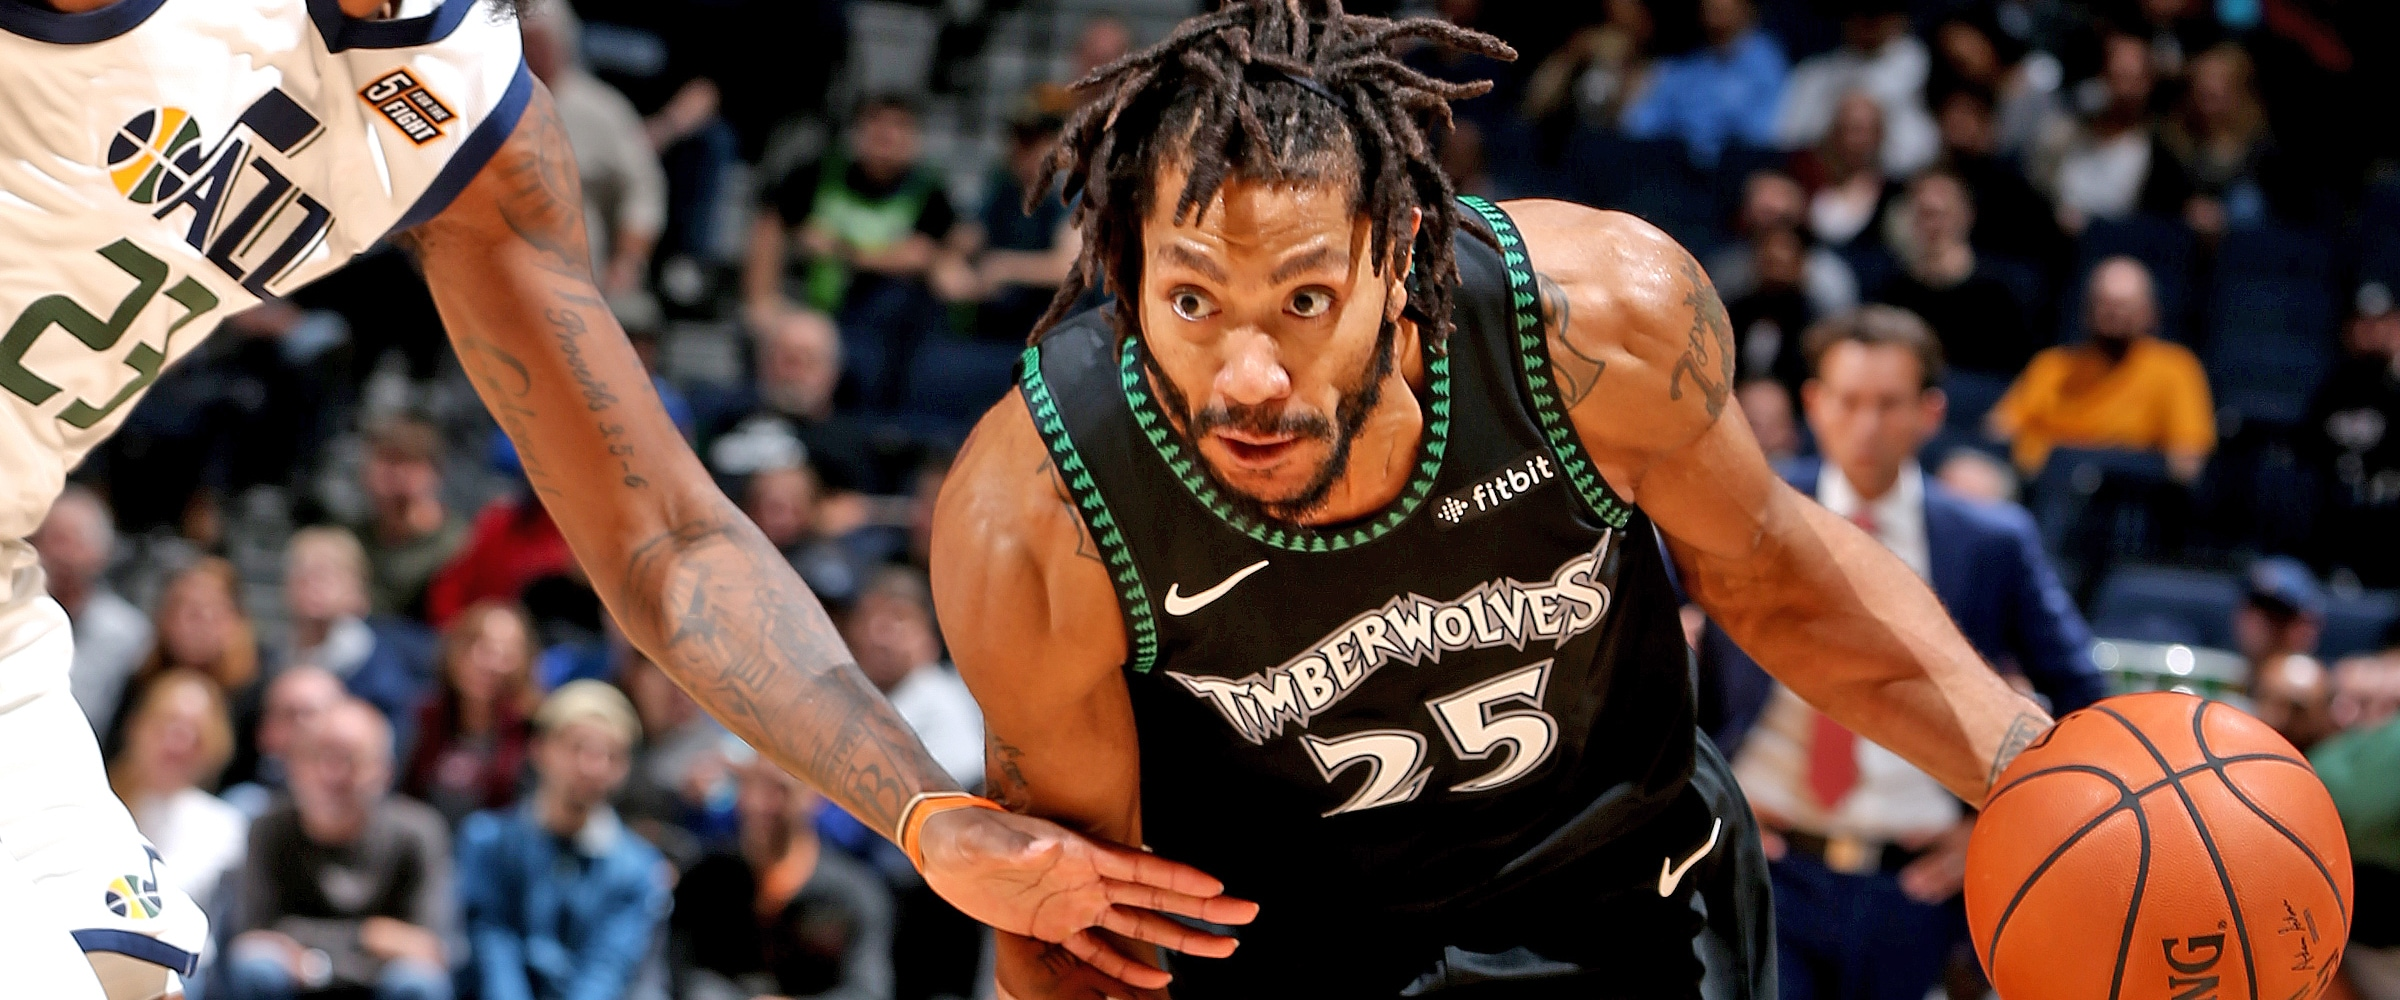 9e94f6a4 Derrick Rose Leads Wolves To Victory With Career-High 50 Points | Minnesota  Timberwolves